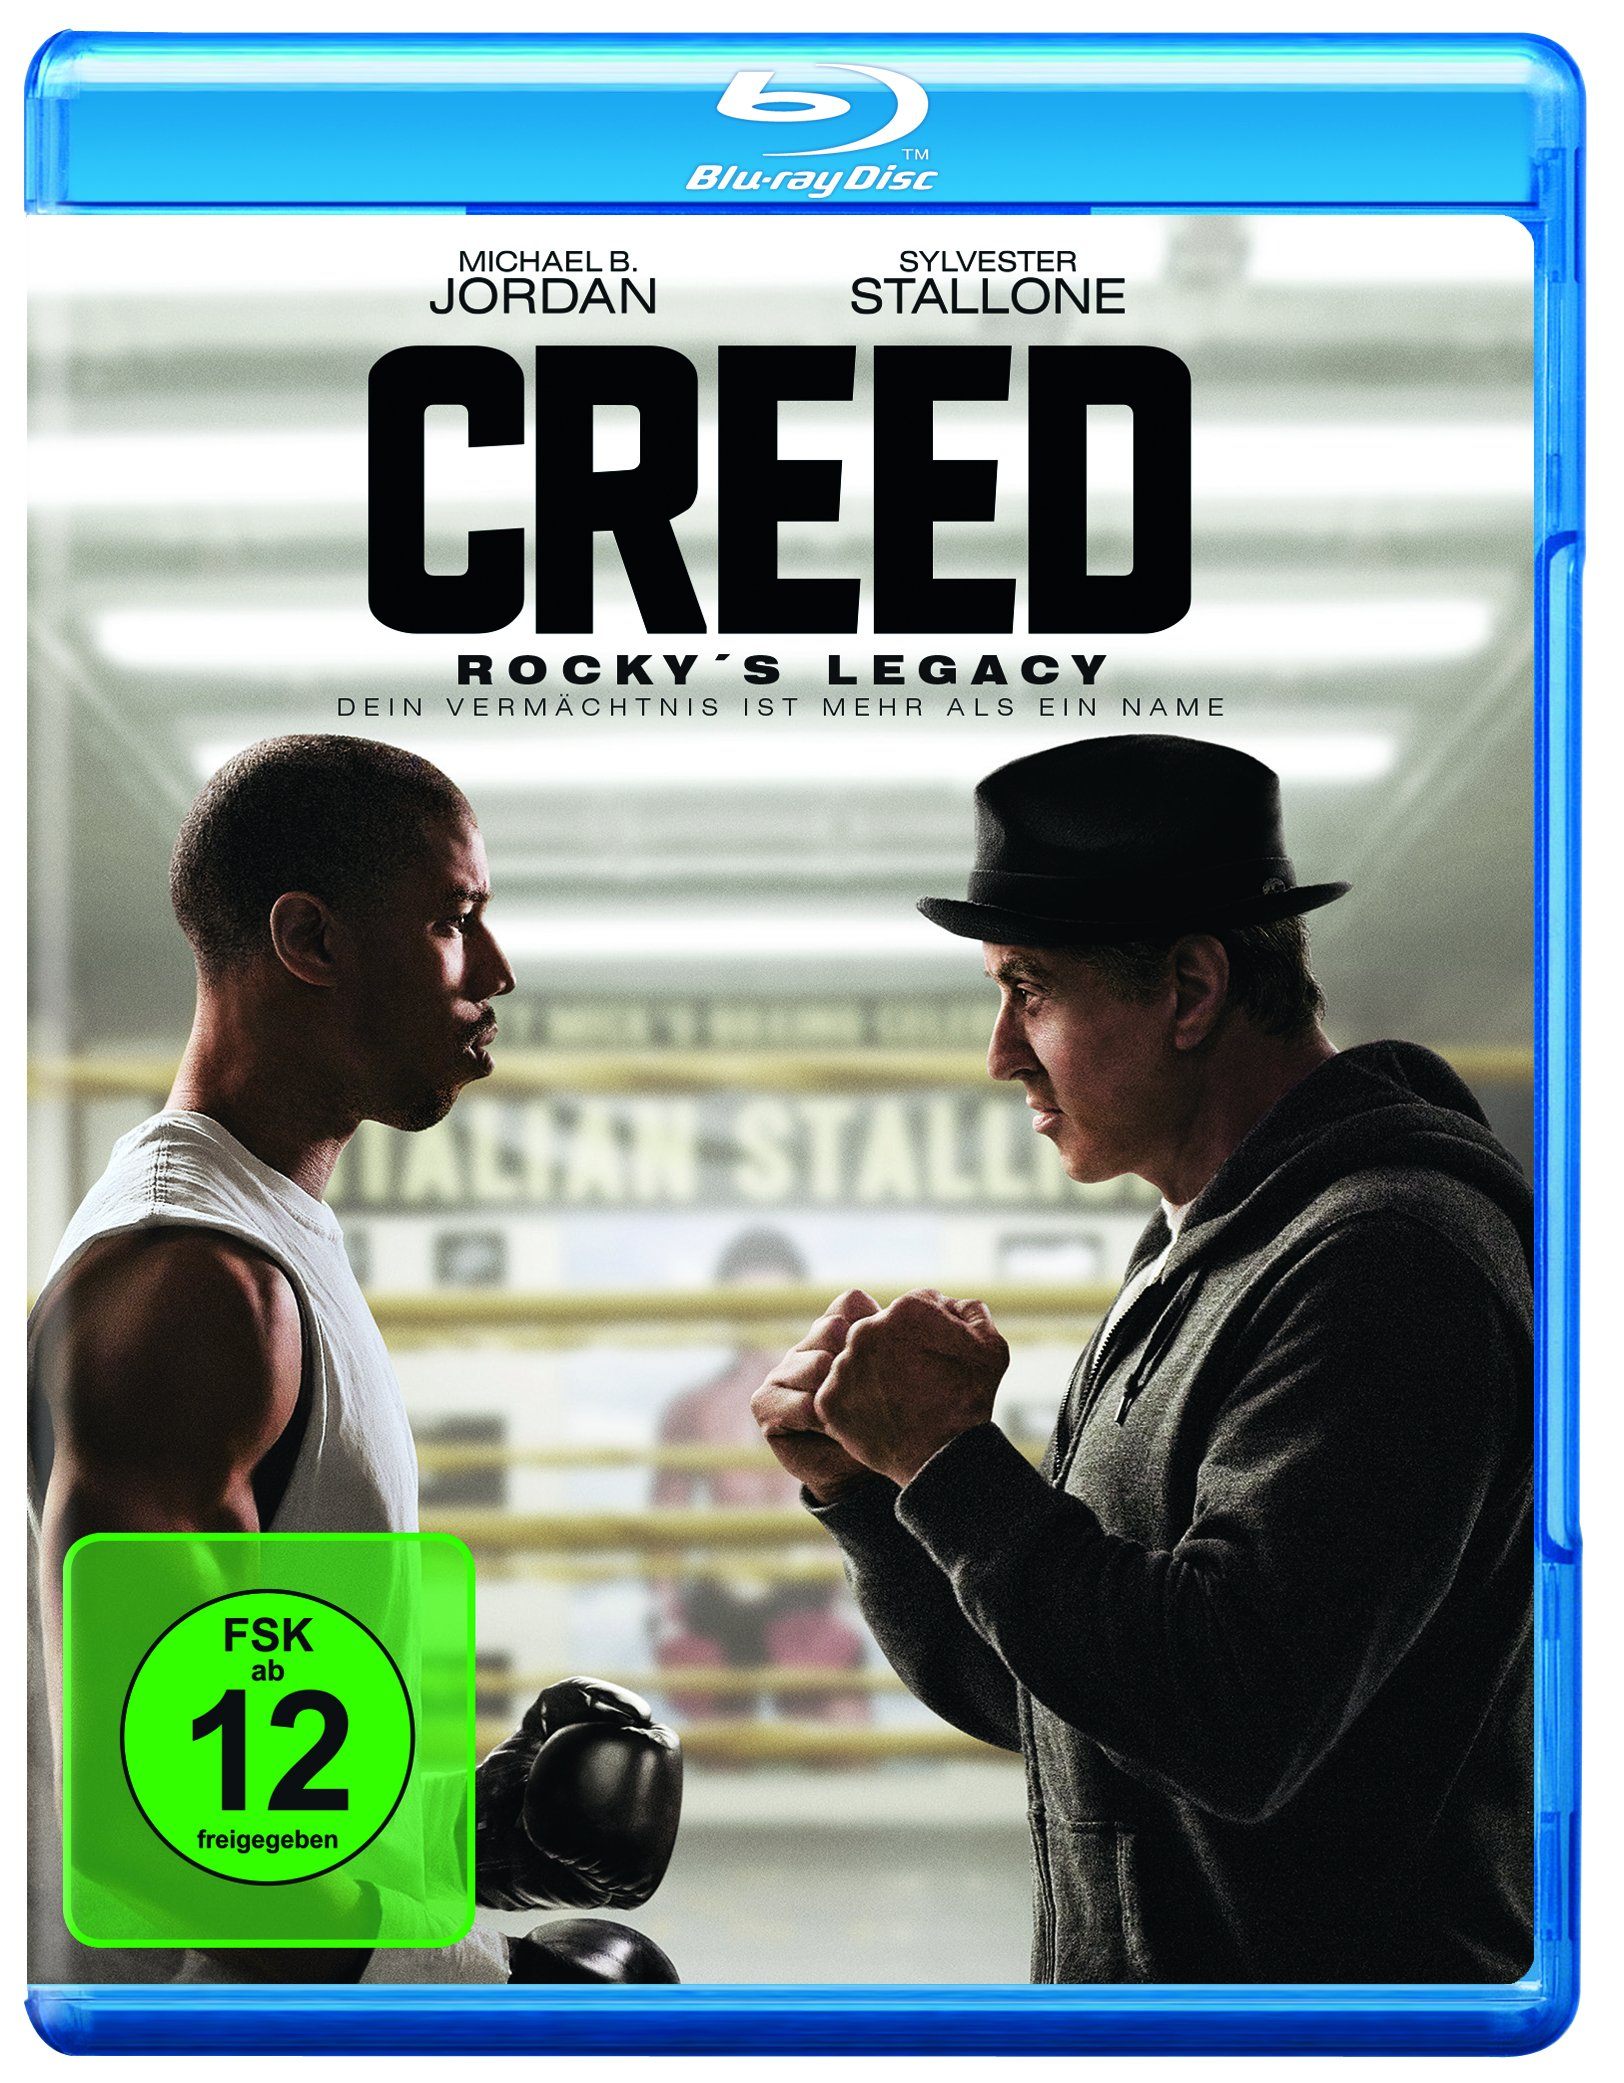 Creed.Rockys.Legacy.2015.German.DL.1080p.BluRay.AVC-SCiENTOLOGY